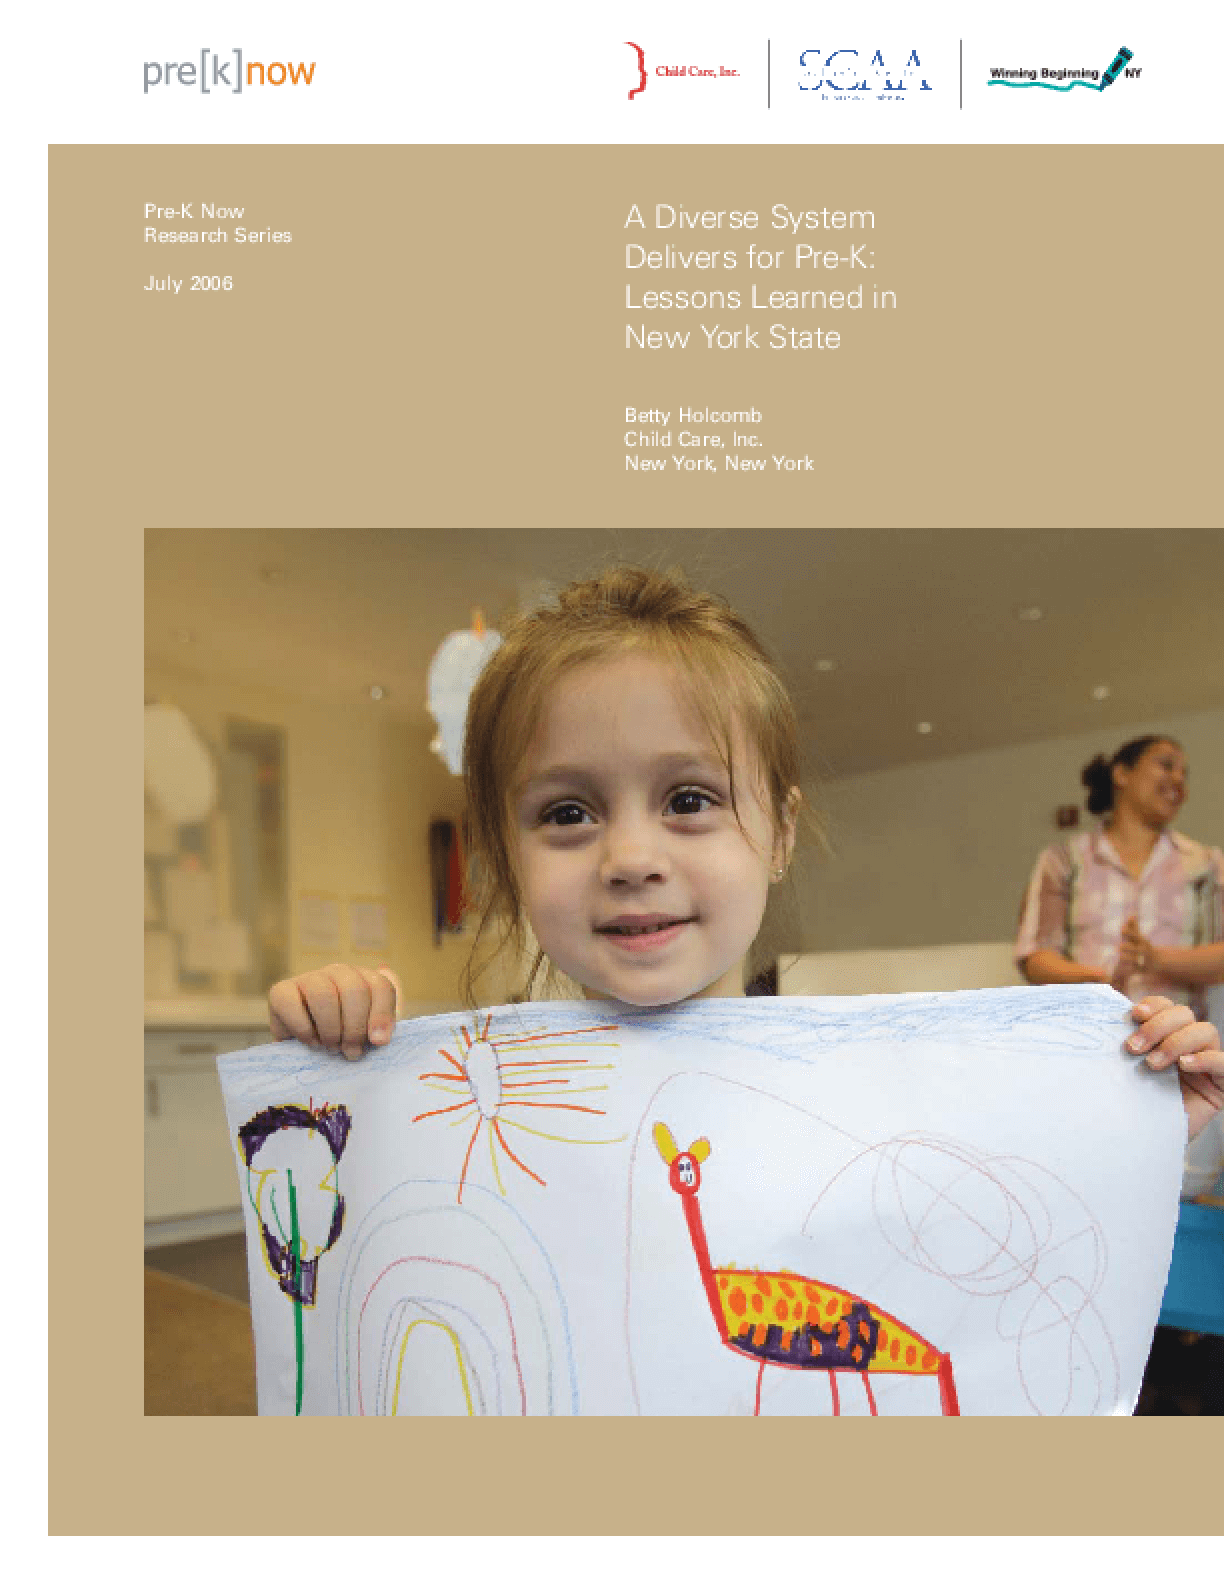 A Diverse System Delivers for Pre-K: Lessons Learned in New York State